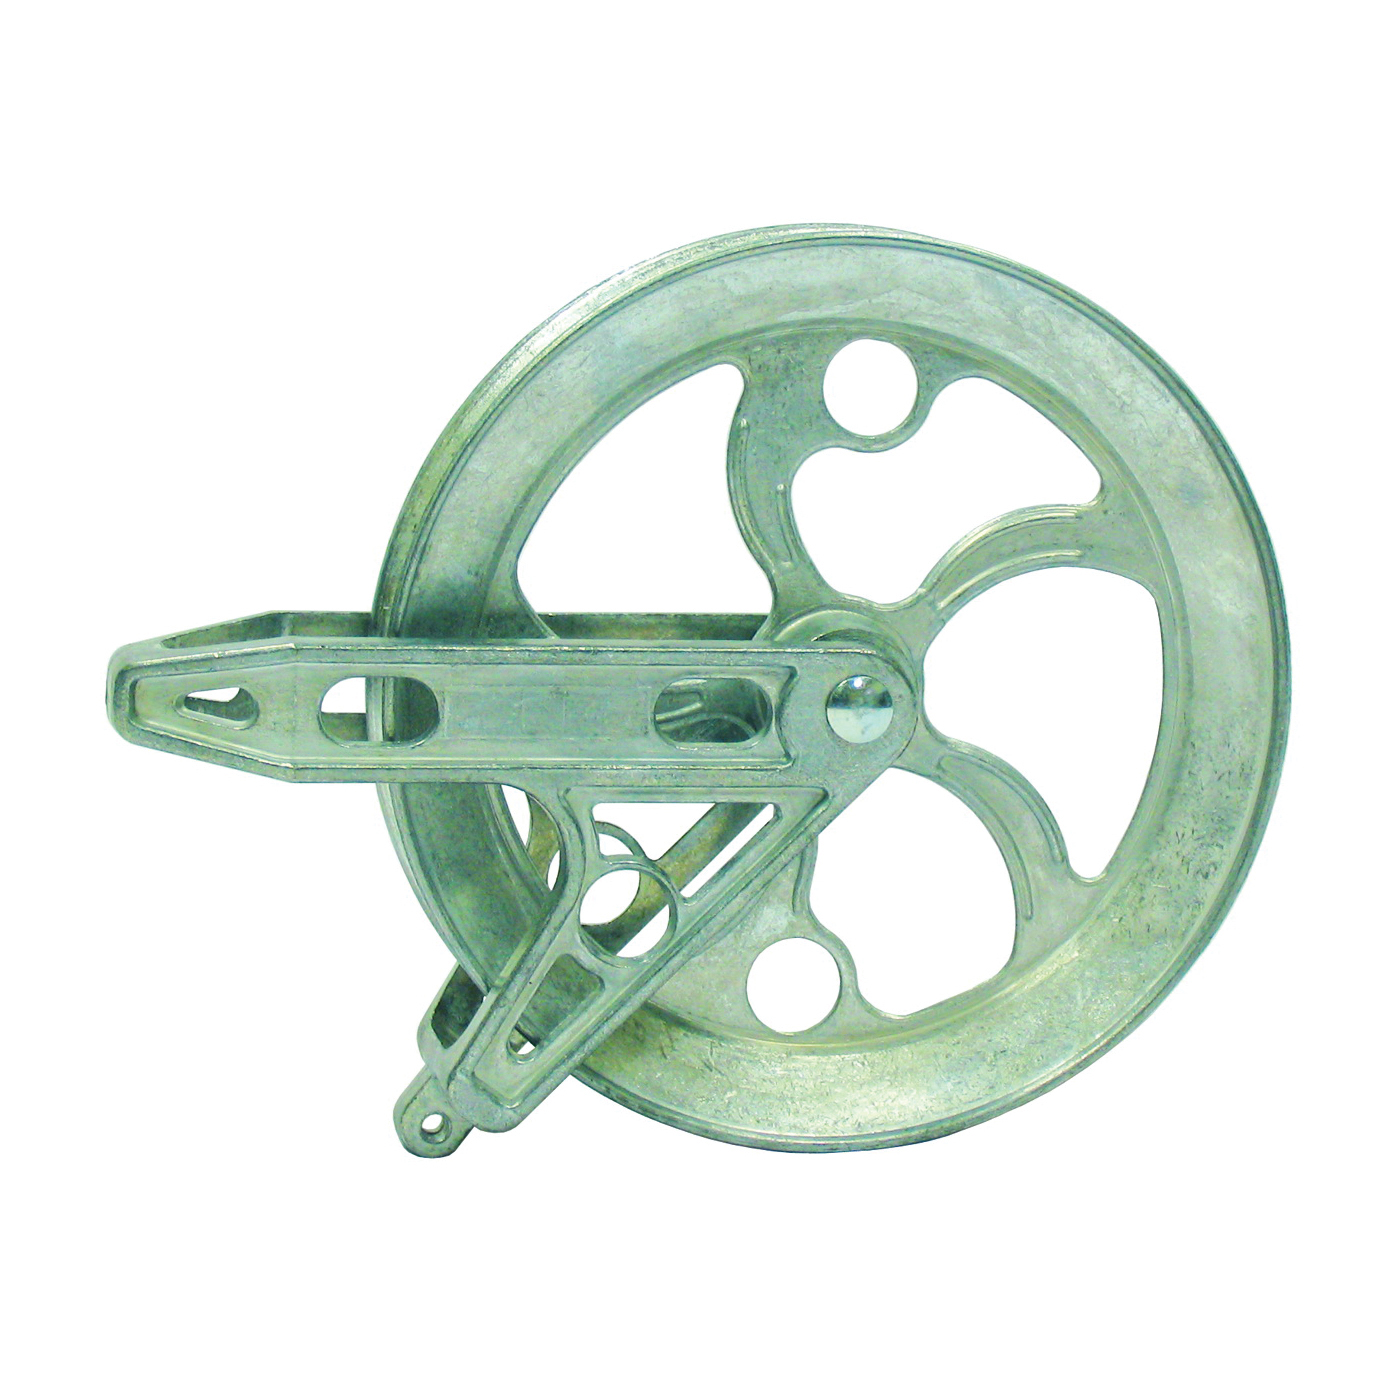 Picture of Ben-Mor 90289 Clothesline Pulley, 6-1/2 in OD, Metal